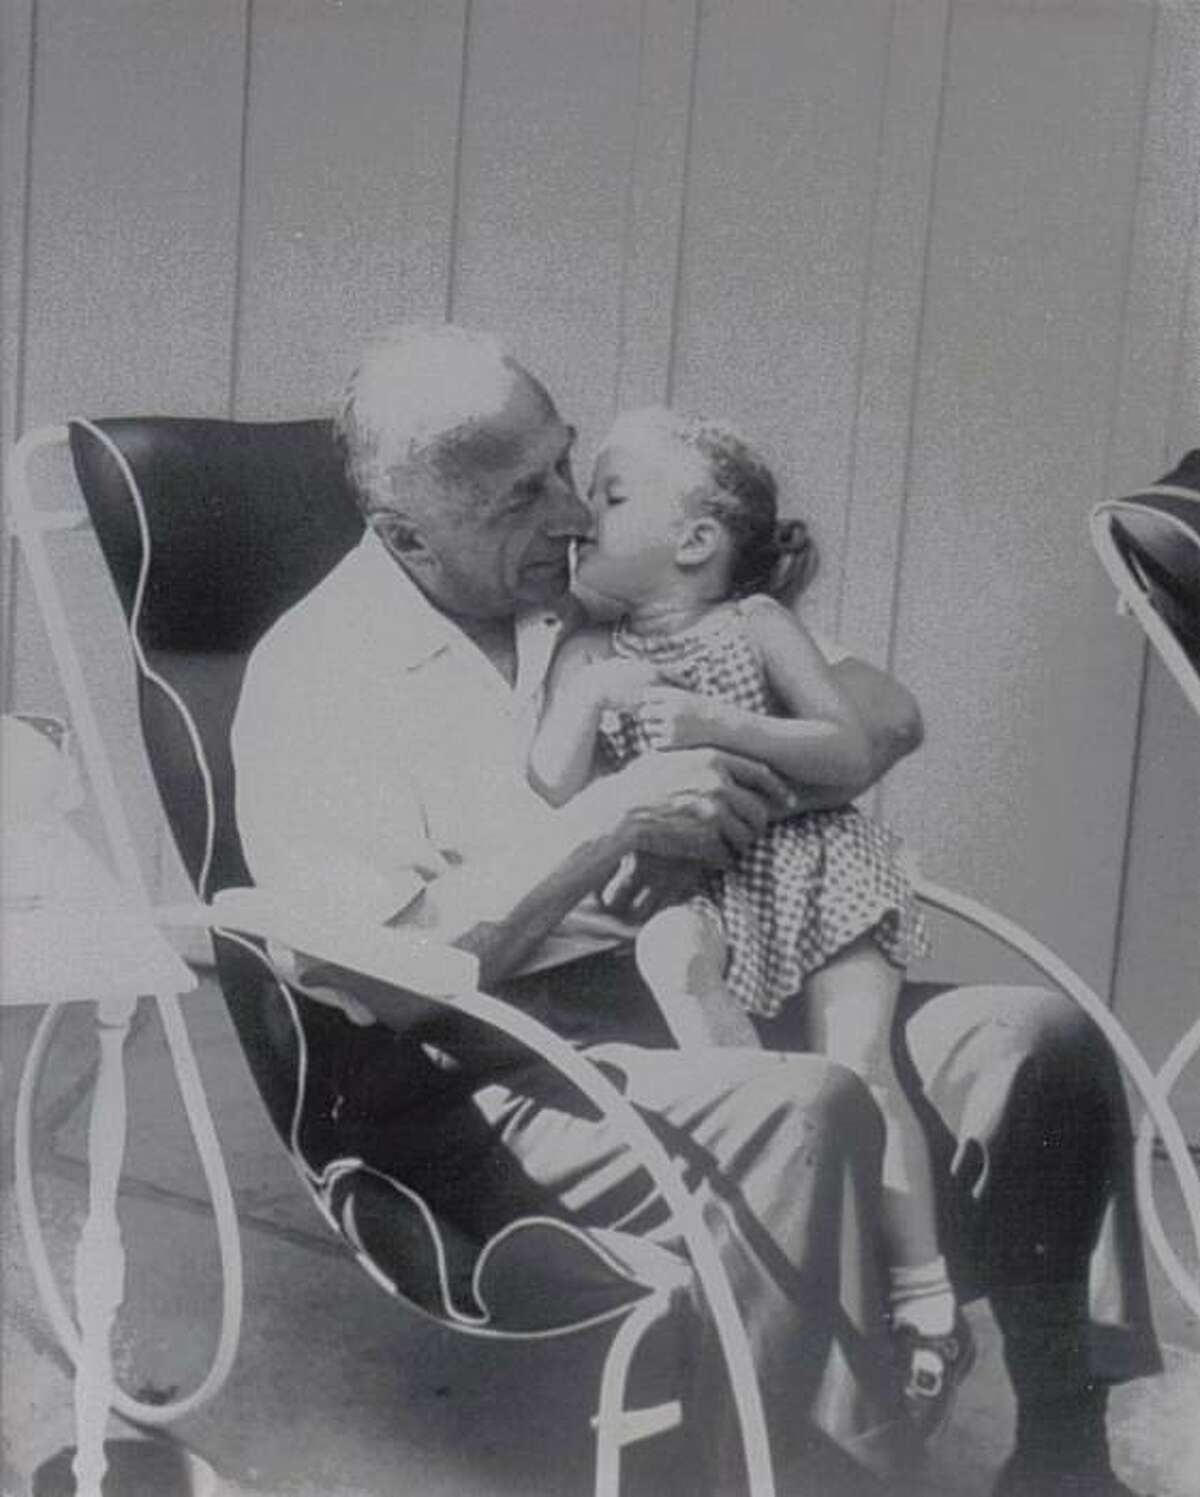 Cass Warner Sperling with her grandfather, Harry Warner, one of the founders of Warner Bros.